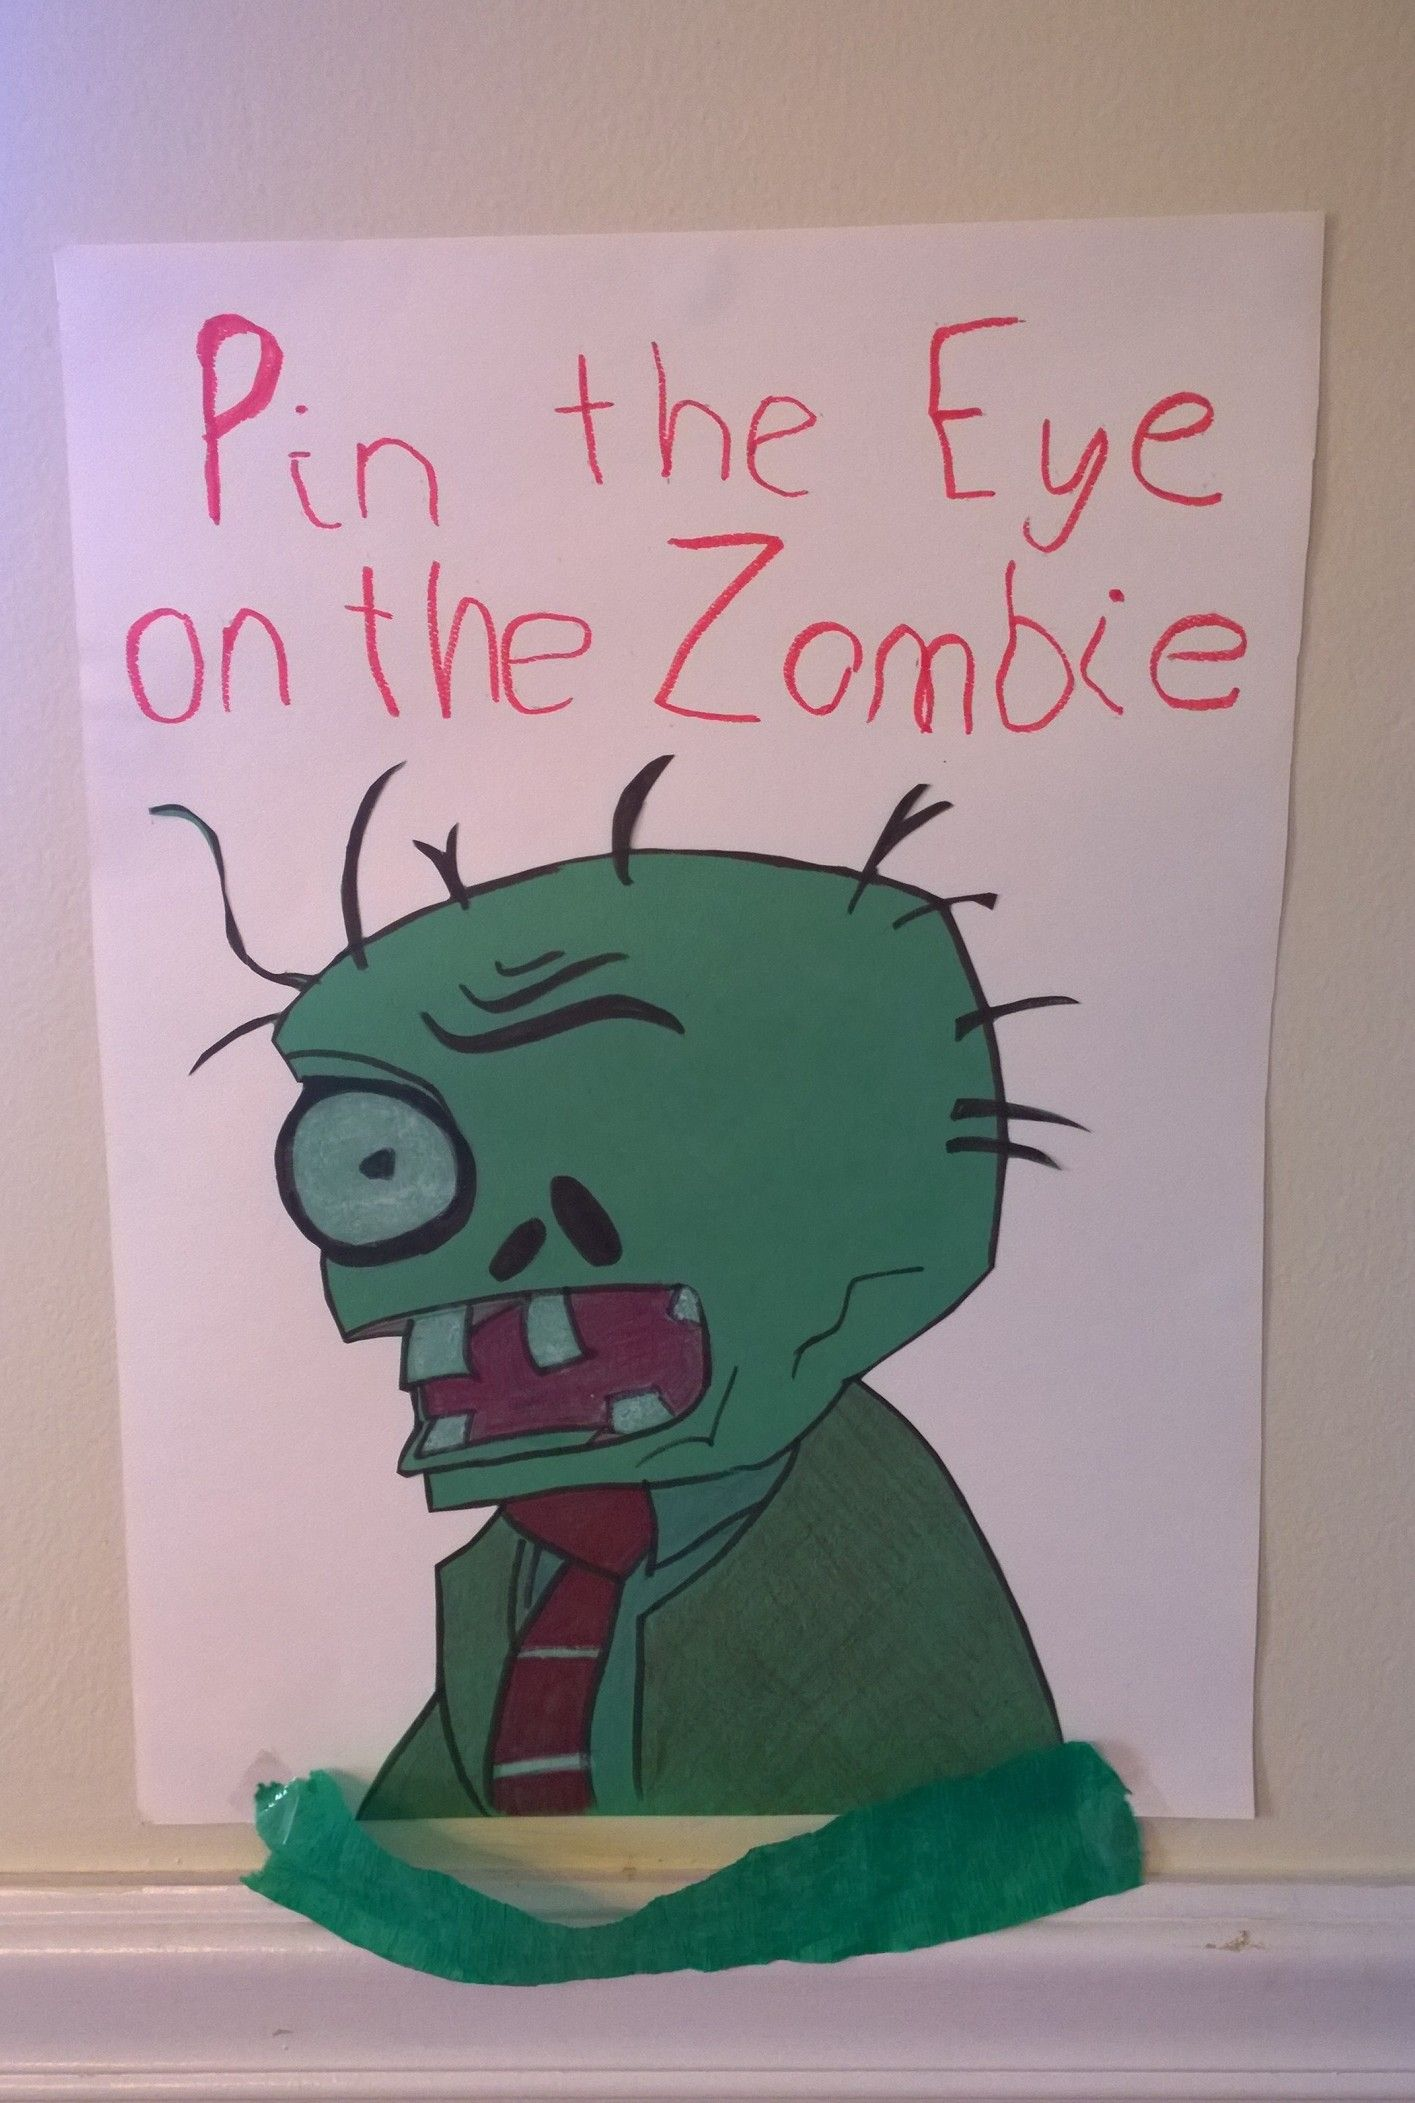 pin the eye on the zombie plants vs zombies party things